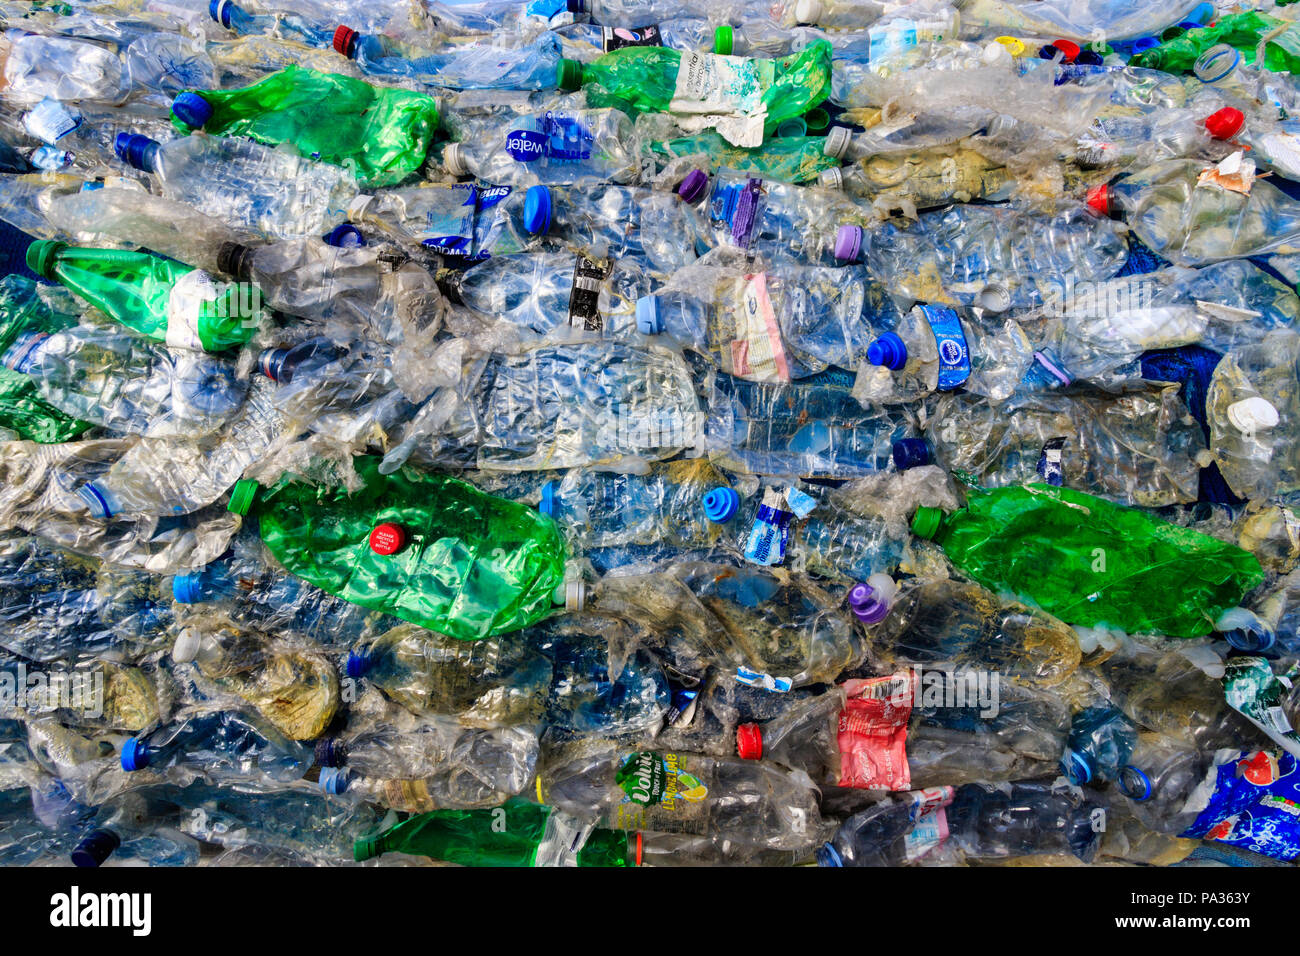 All kinds of consumer plastics stuck together to show the sheer amount and range of disregarded plastics found in the oceans. Pet bottles, others item - Stock Image